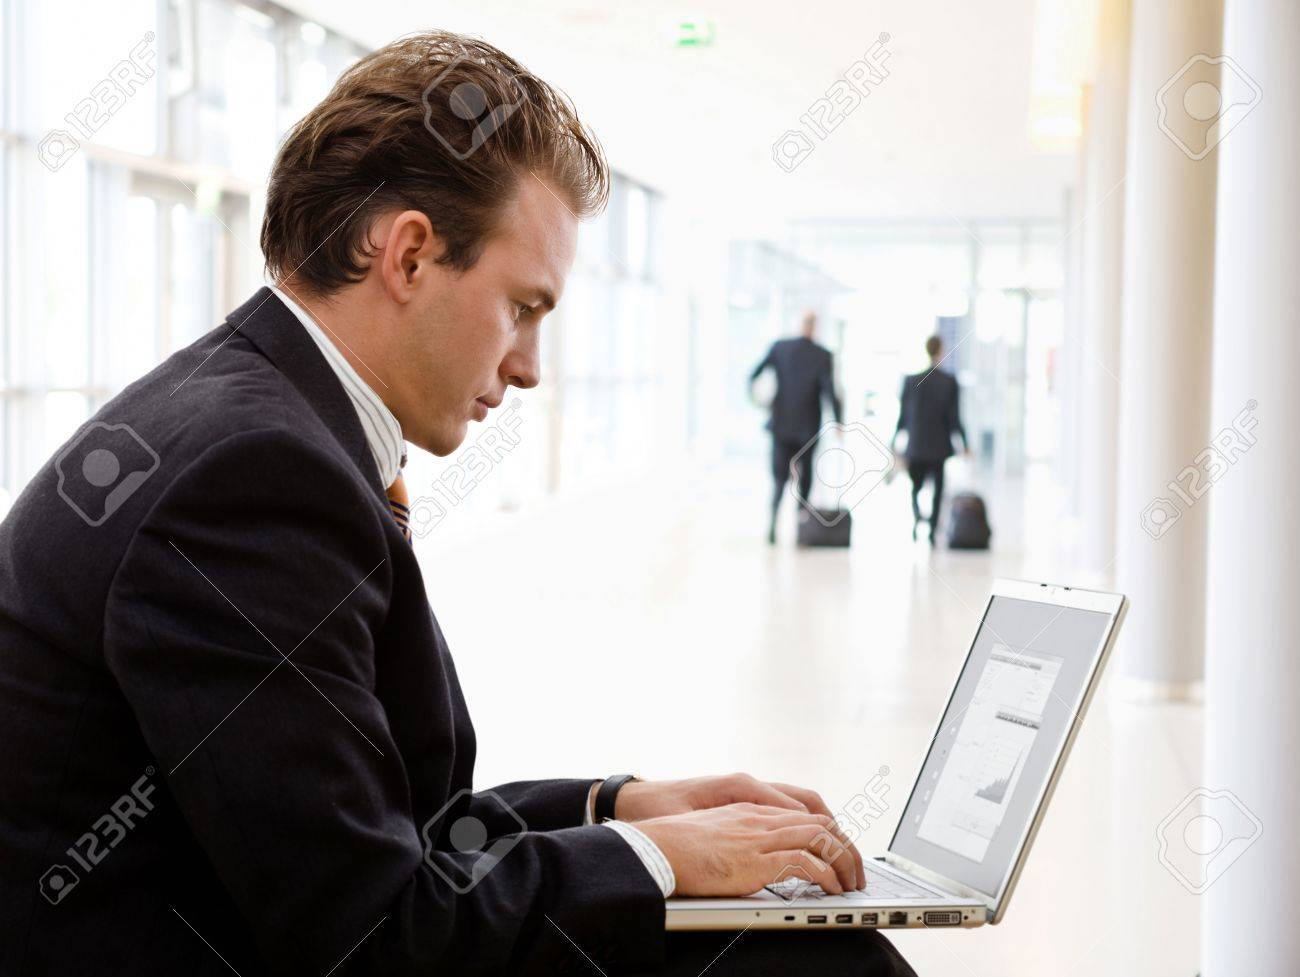 Businessman working on laptop computer at office lobby. Stock Photo - 3916195